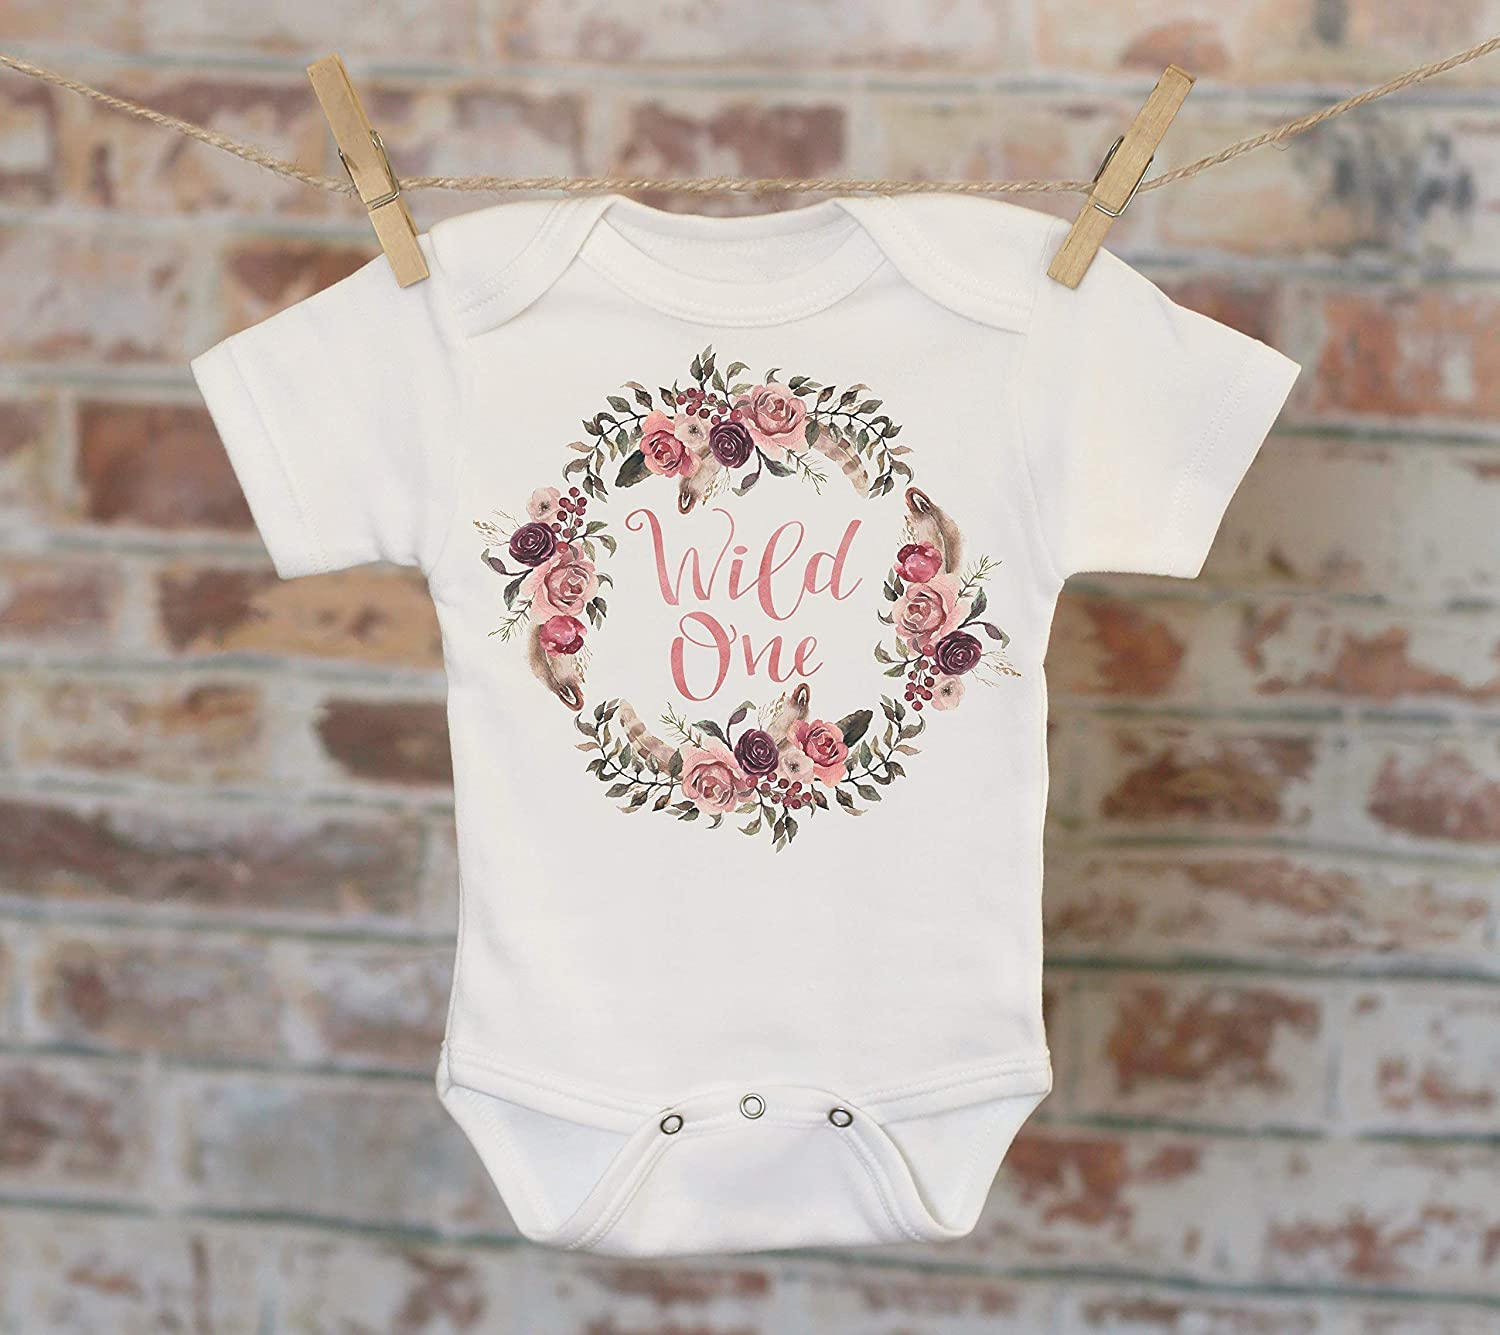 Wild One Flower Wreath Onesie®, First Birthday Onesie, Rustic Onesie, Cute Onesie, Boho Baby Onesie, Woodland Style Onesie